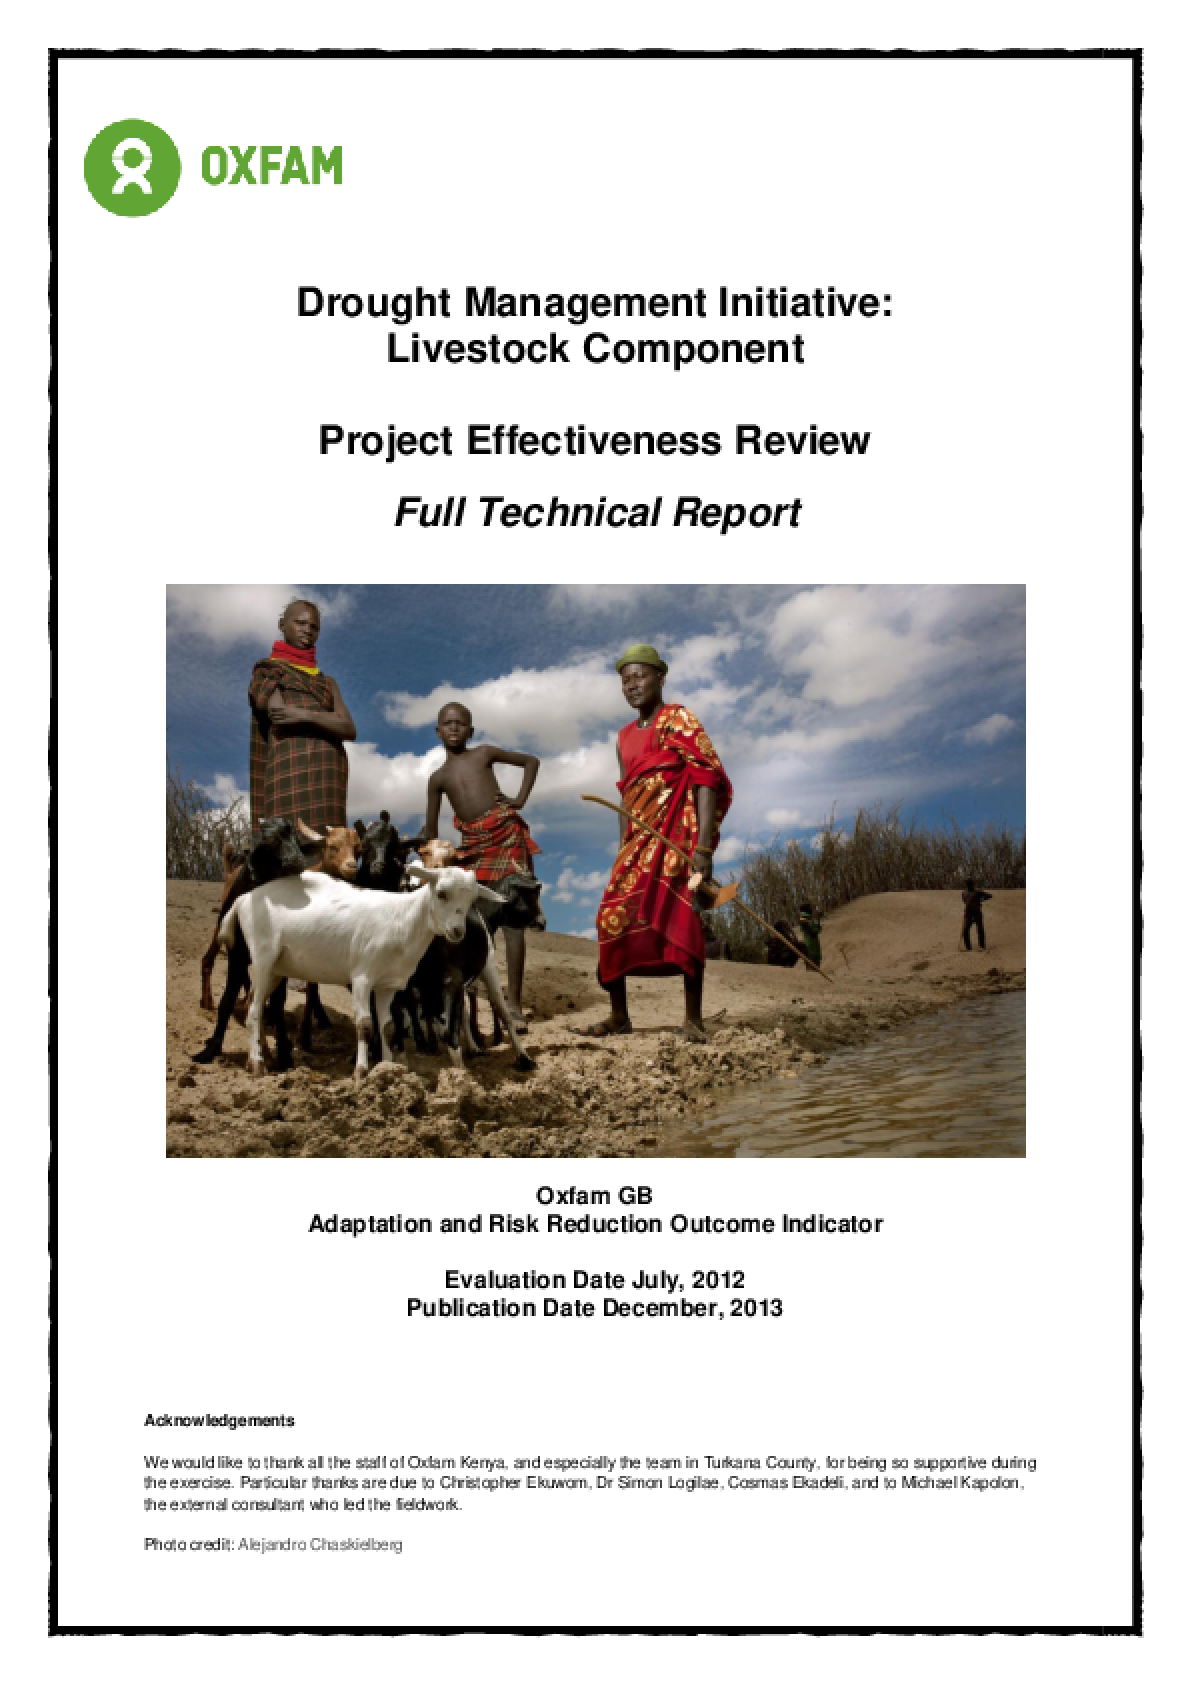 Effectiveness Review: Drought Management Initiative: Livestock Component, Kenya